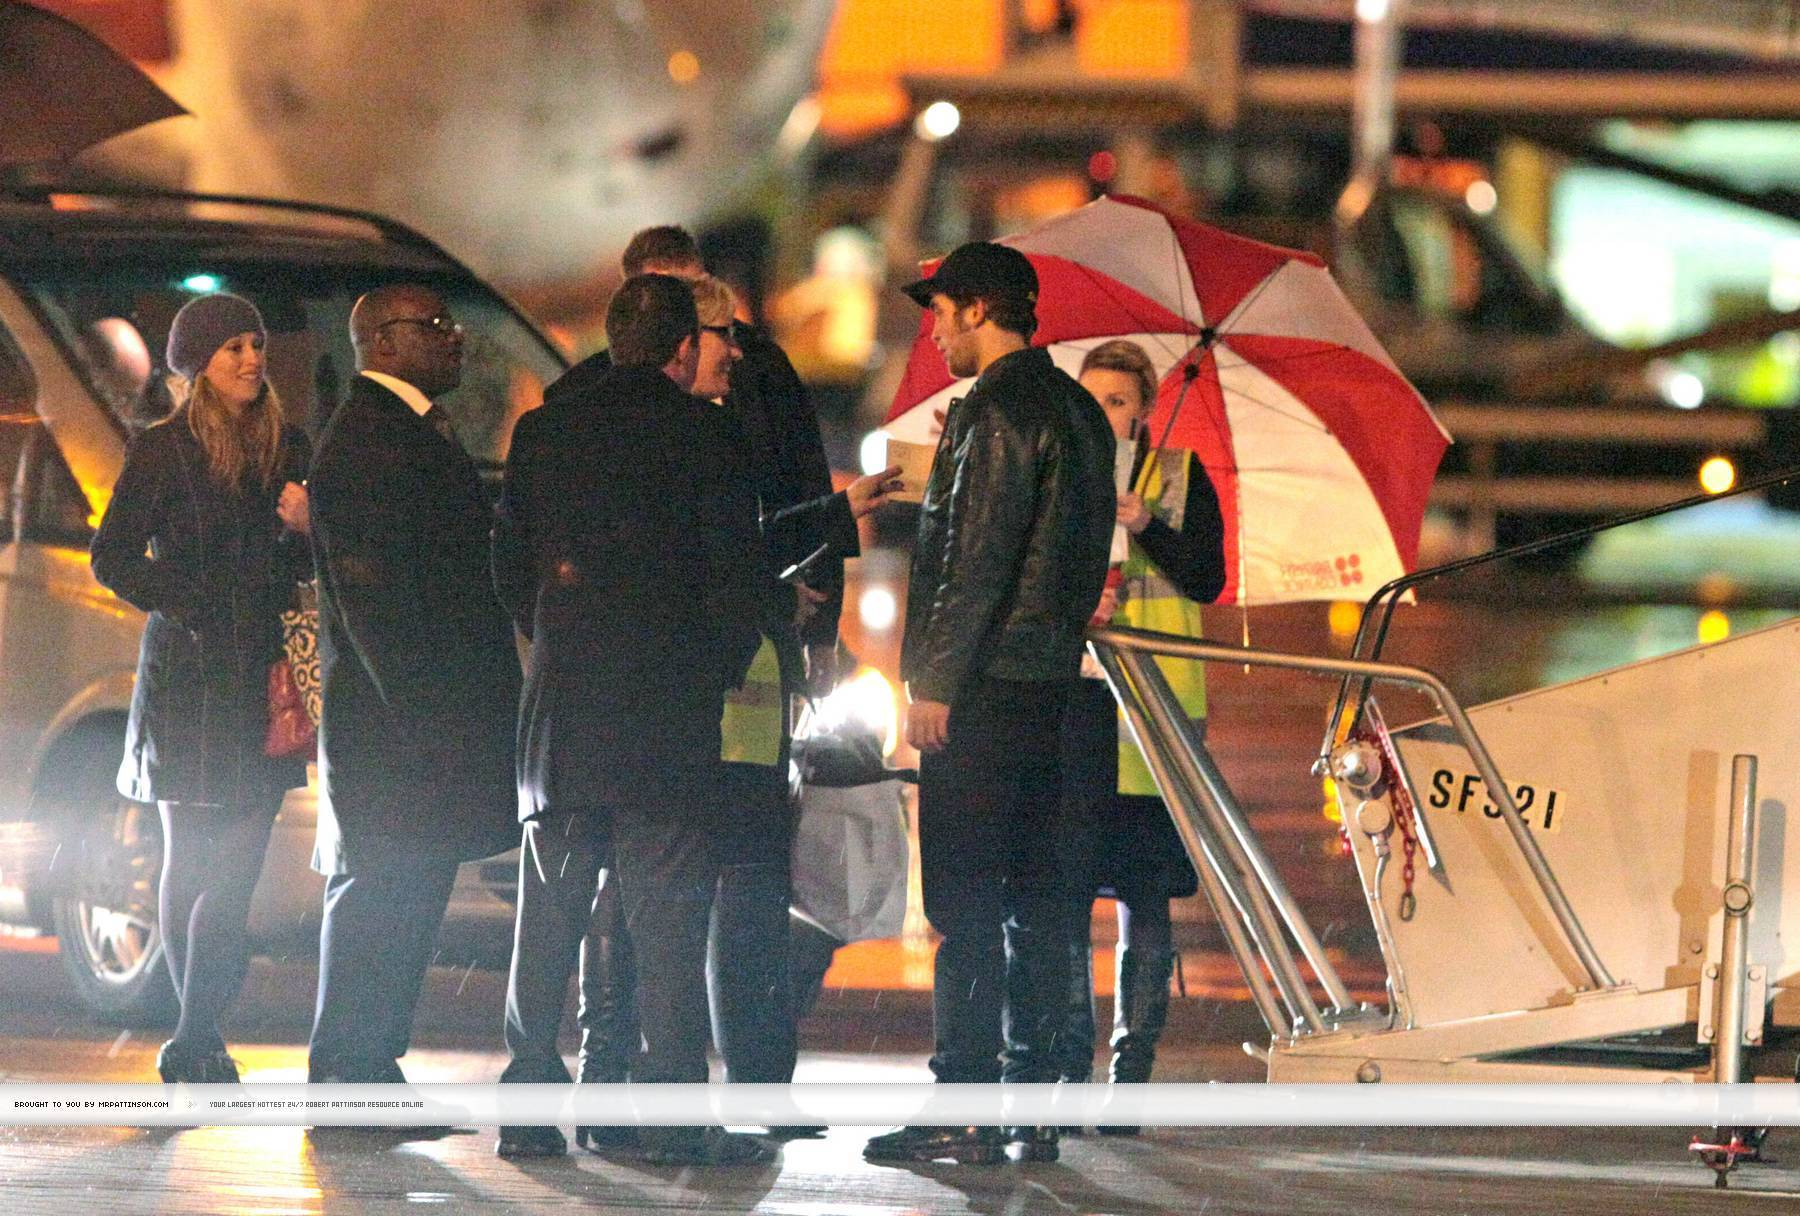 Rob, Kristen and Taylor leaving Londres last night